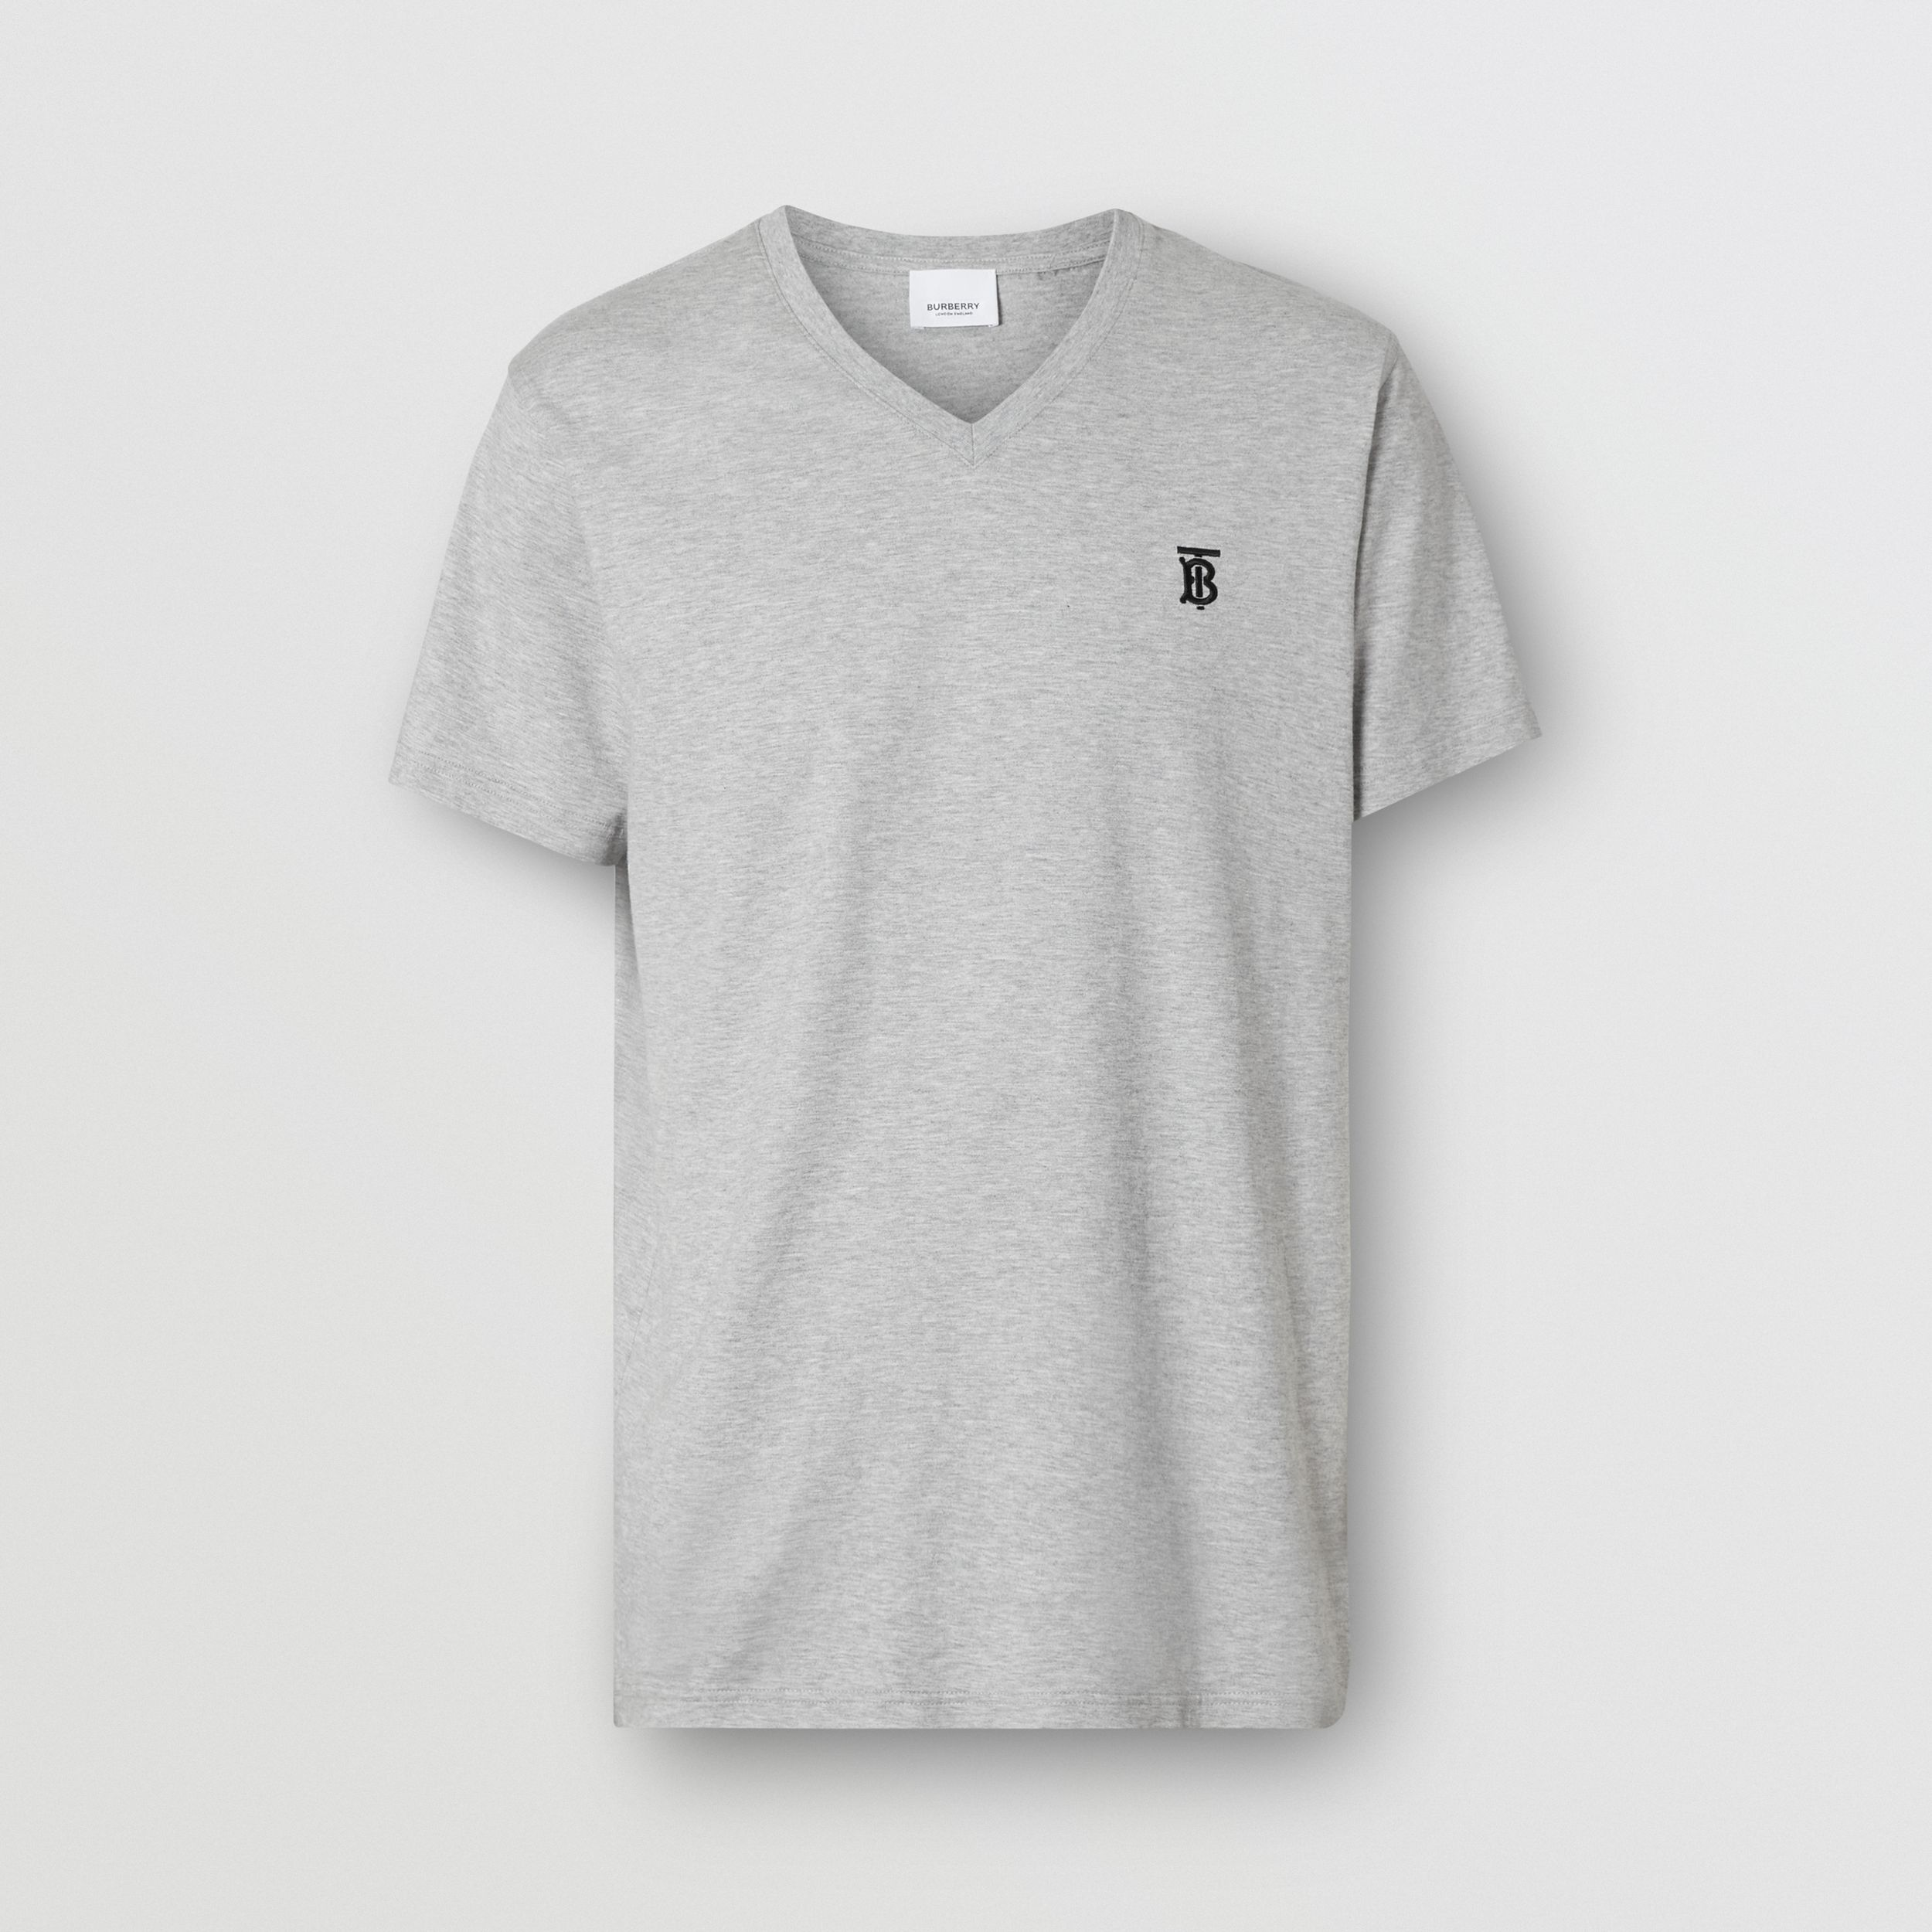 Monogram Motif Cotton V-neck T-shirt in Pale Grey Melange - Men | Burberry United Kingdom - 4